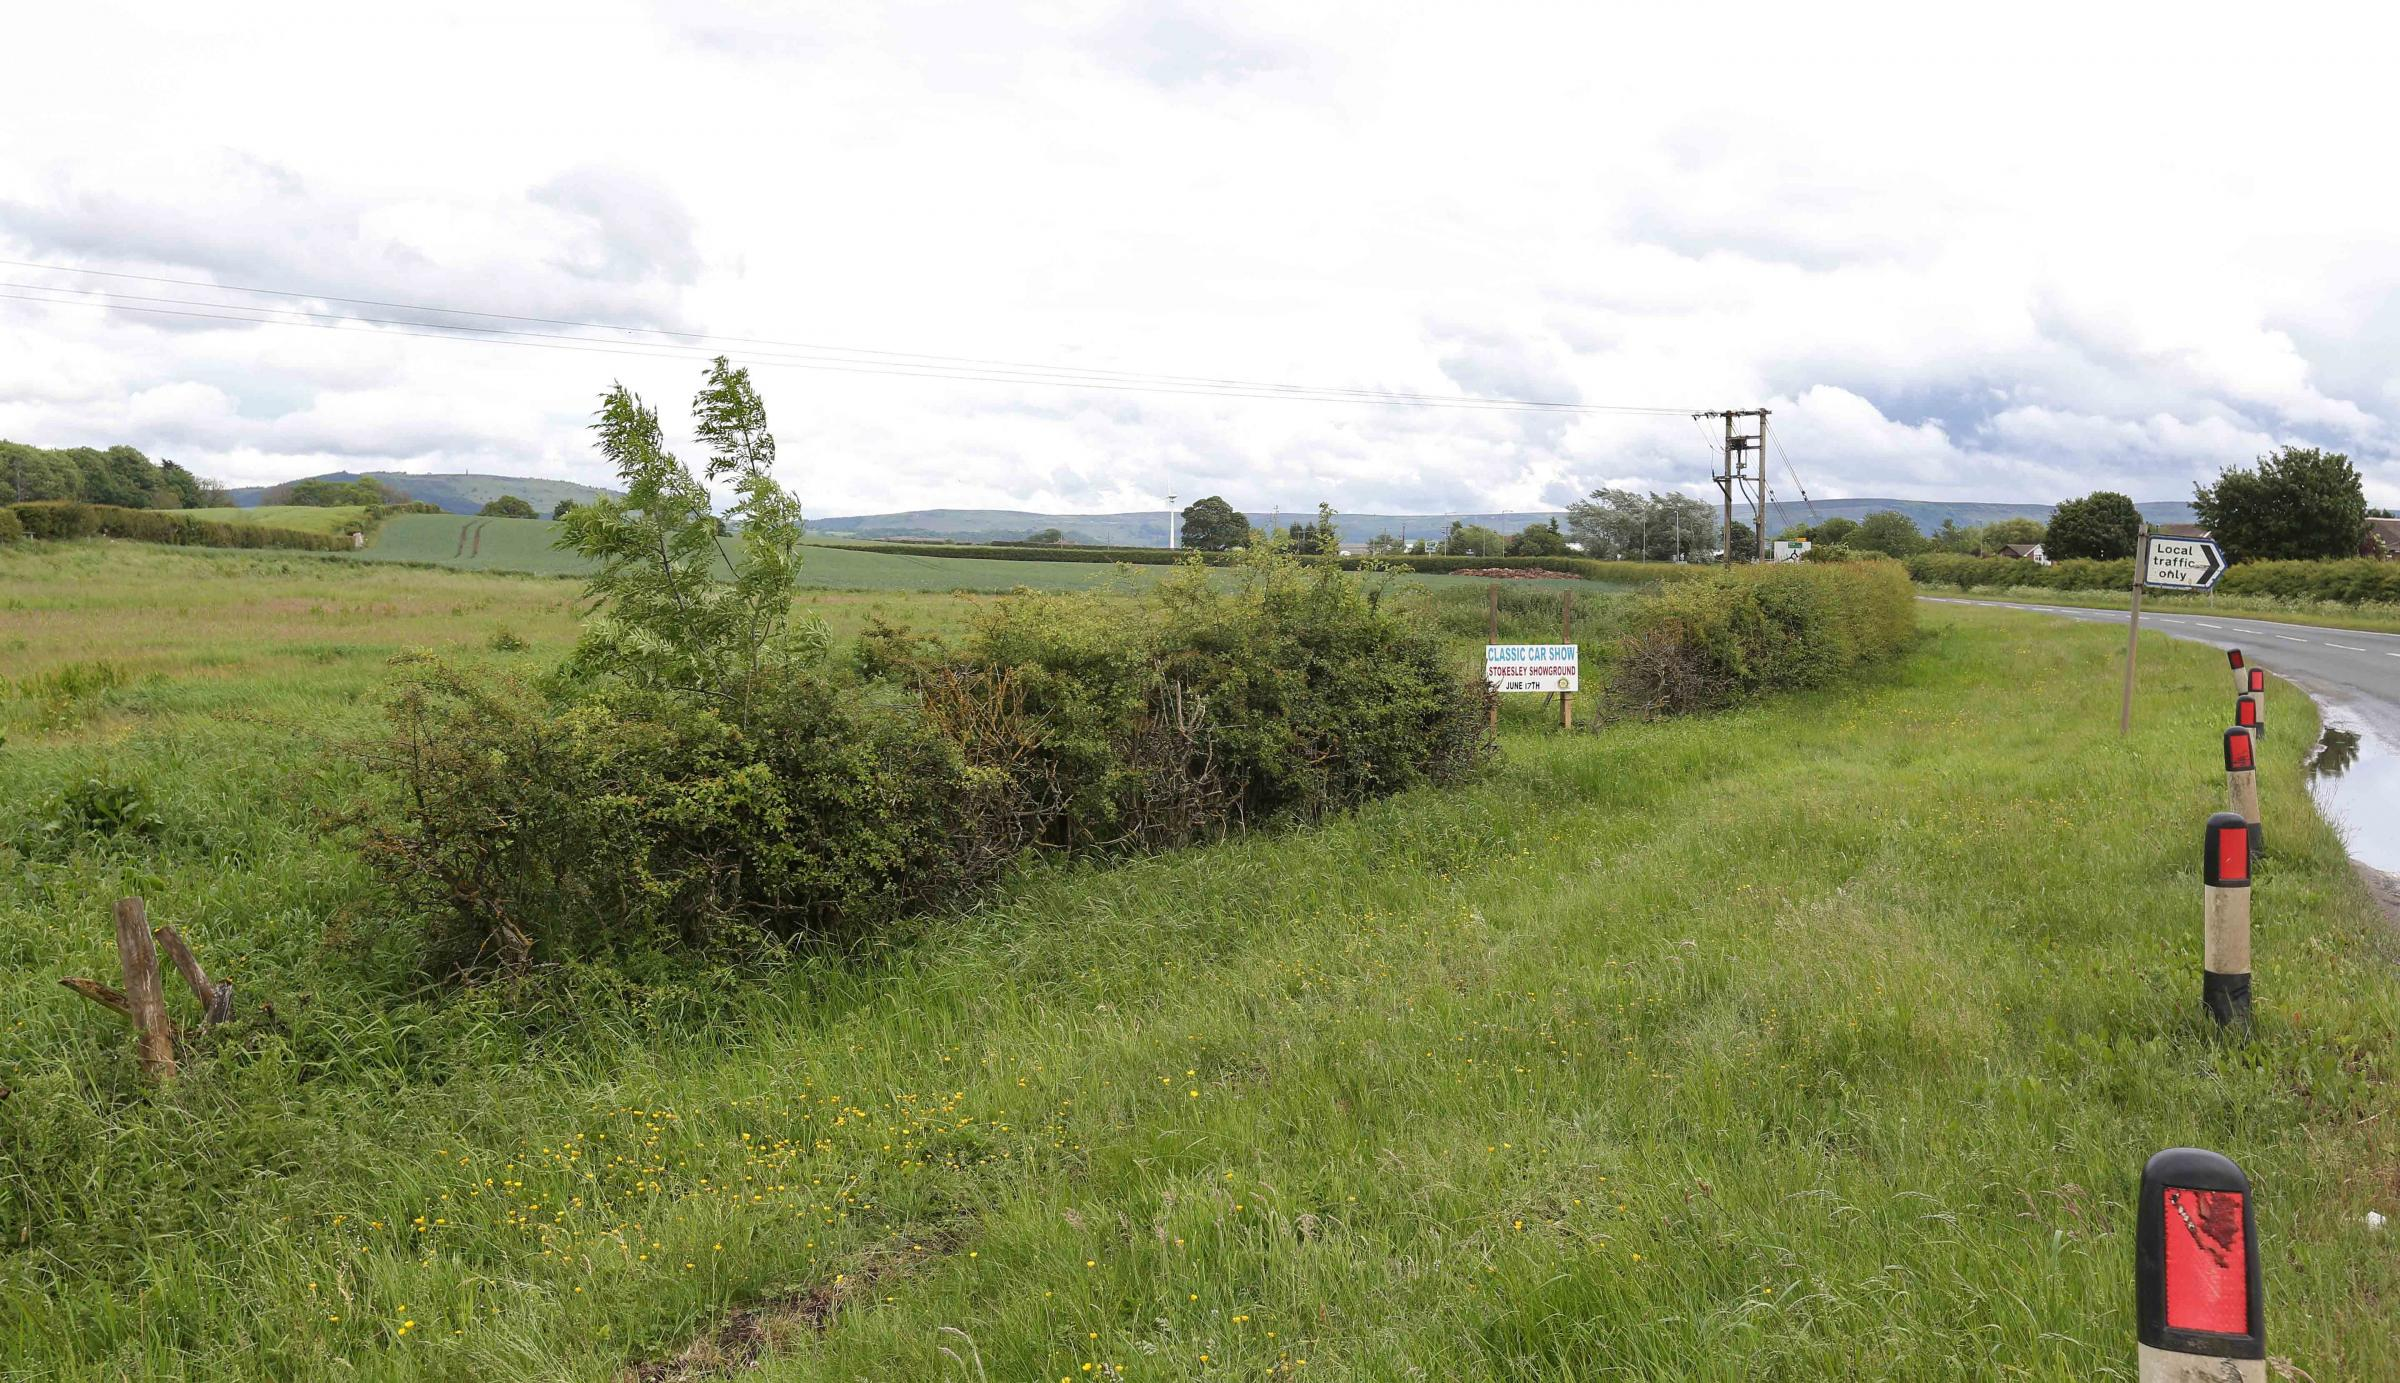 The land north of Stokesley where Gladman were hoping to develop homes